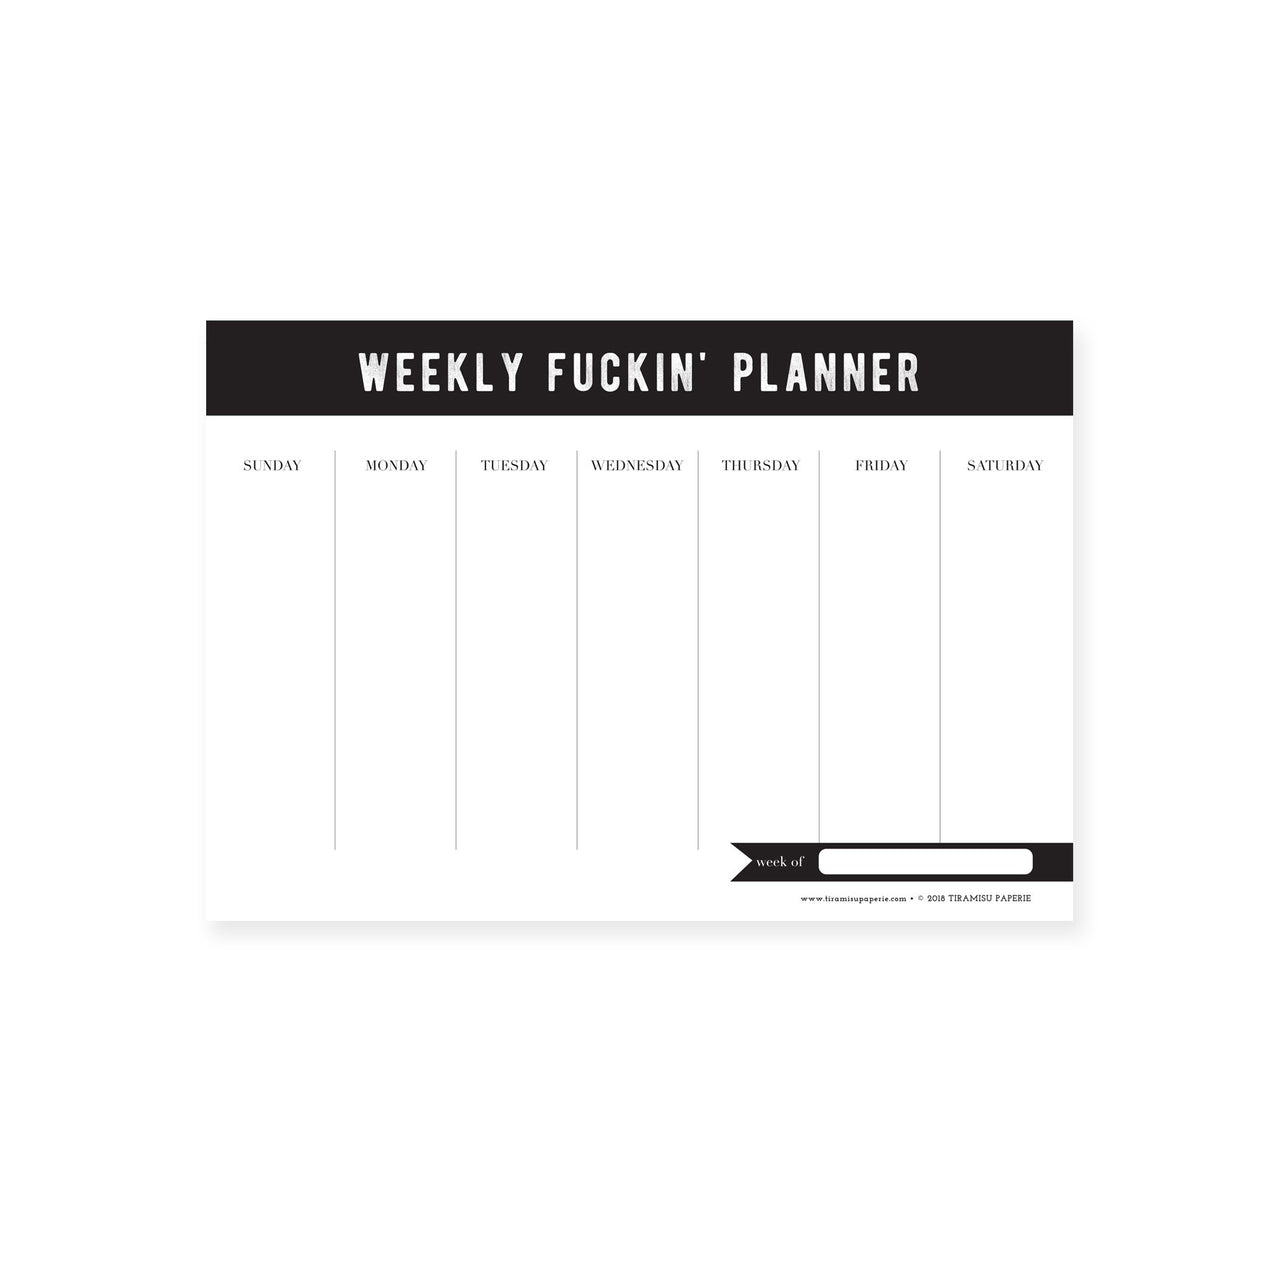 Weekly Fuckin' Planner Mousepad Notepad